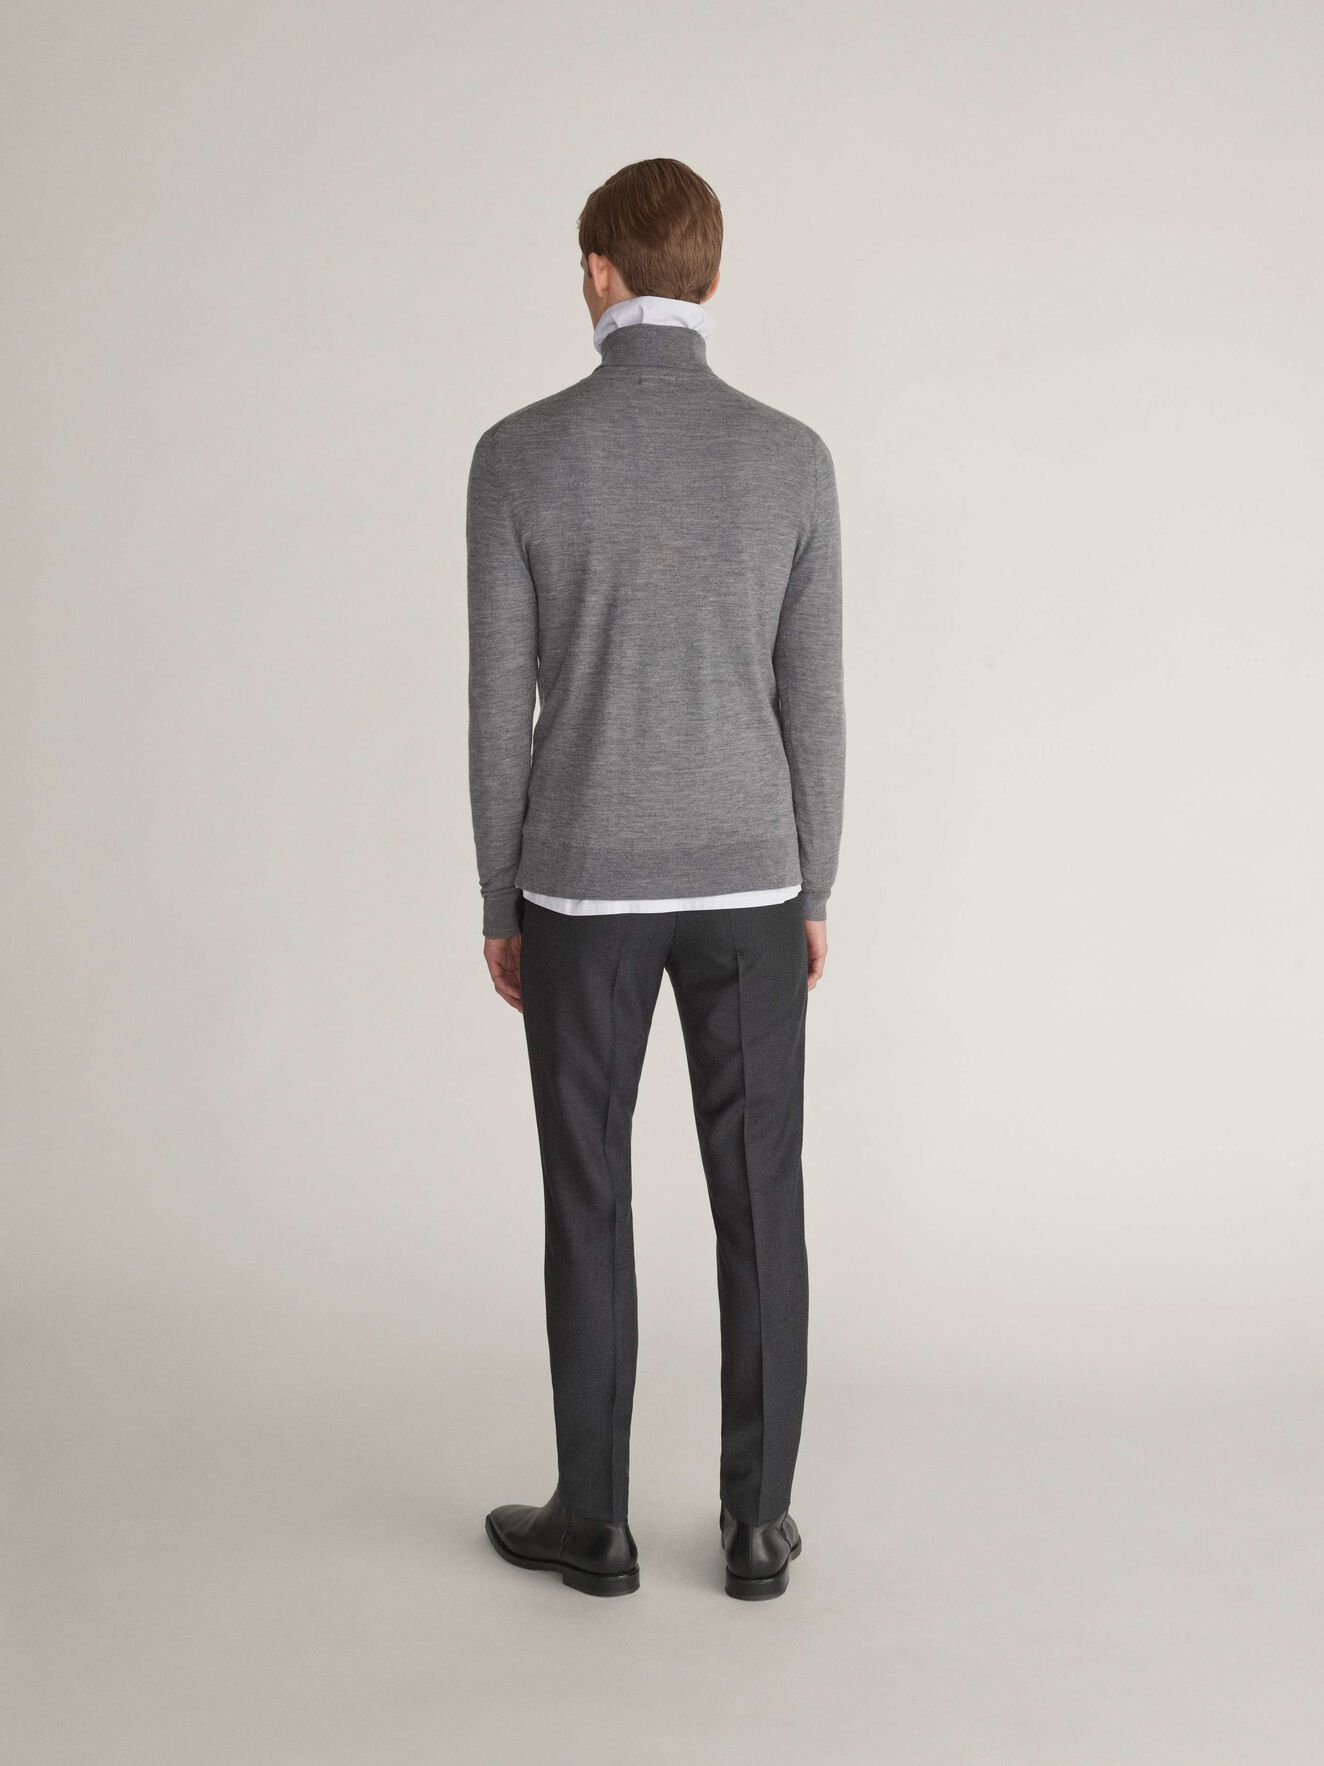 Nevile Pullover in Light grey melange from Tiger of Sweden